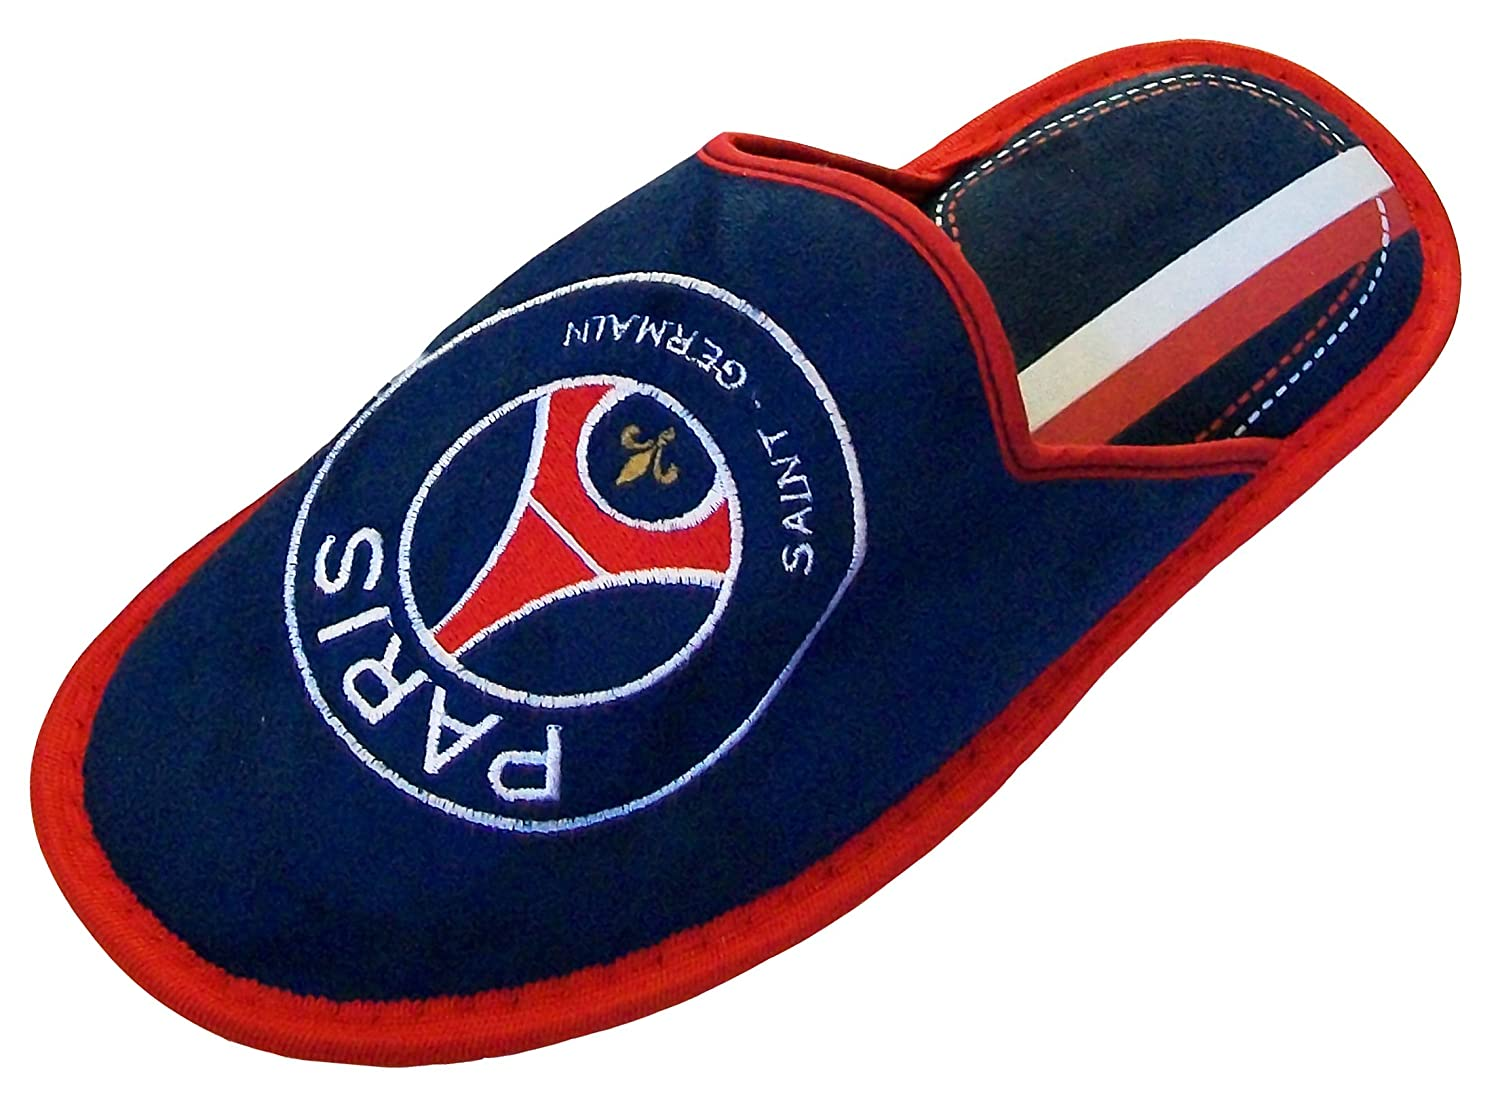 Chaussons PSG - Collection offic… ONxlbf